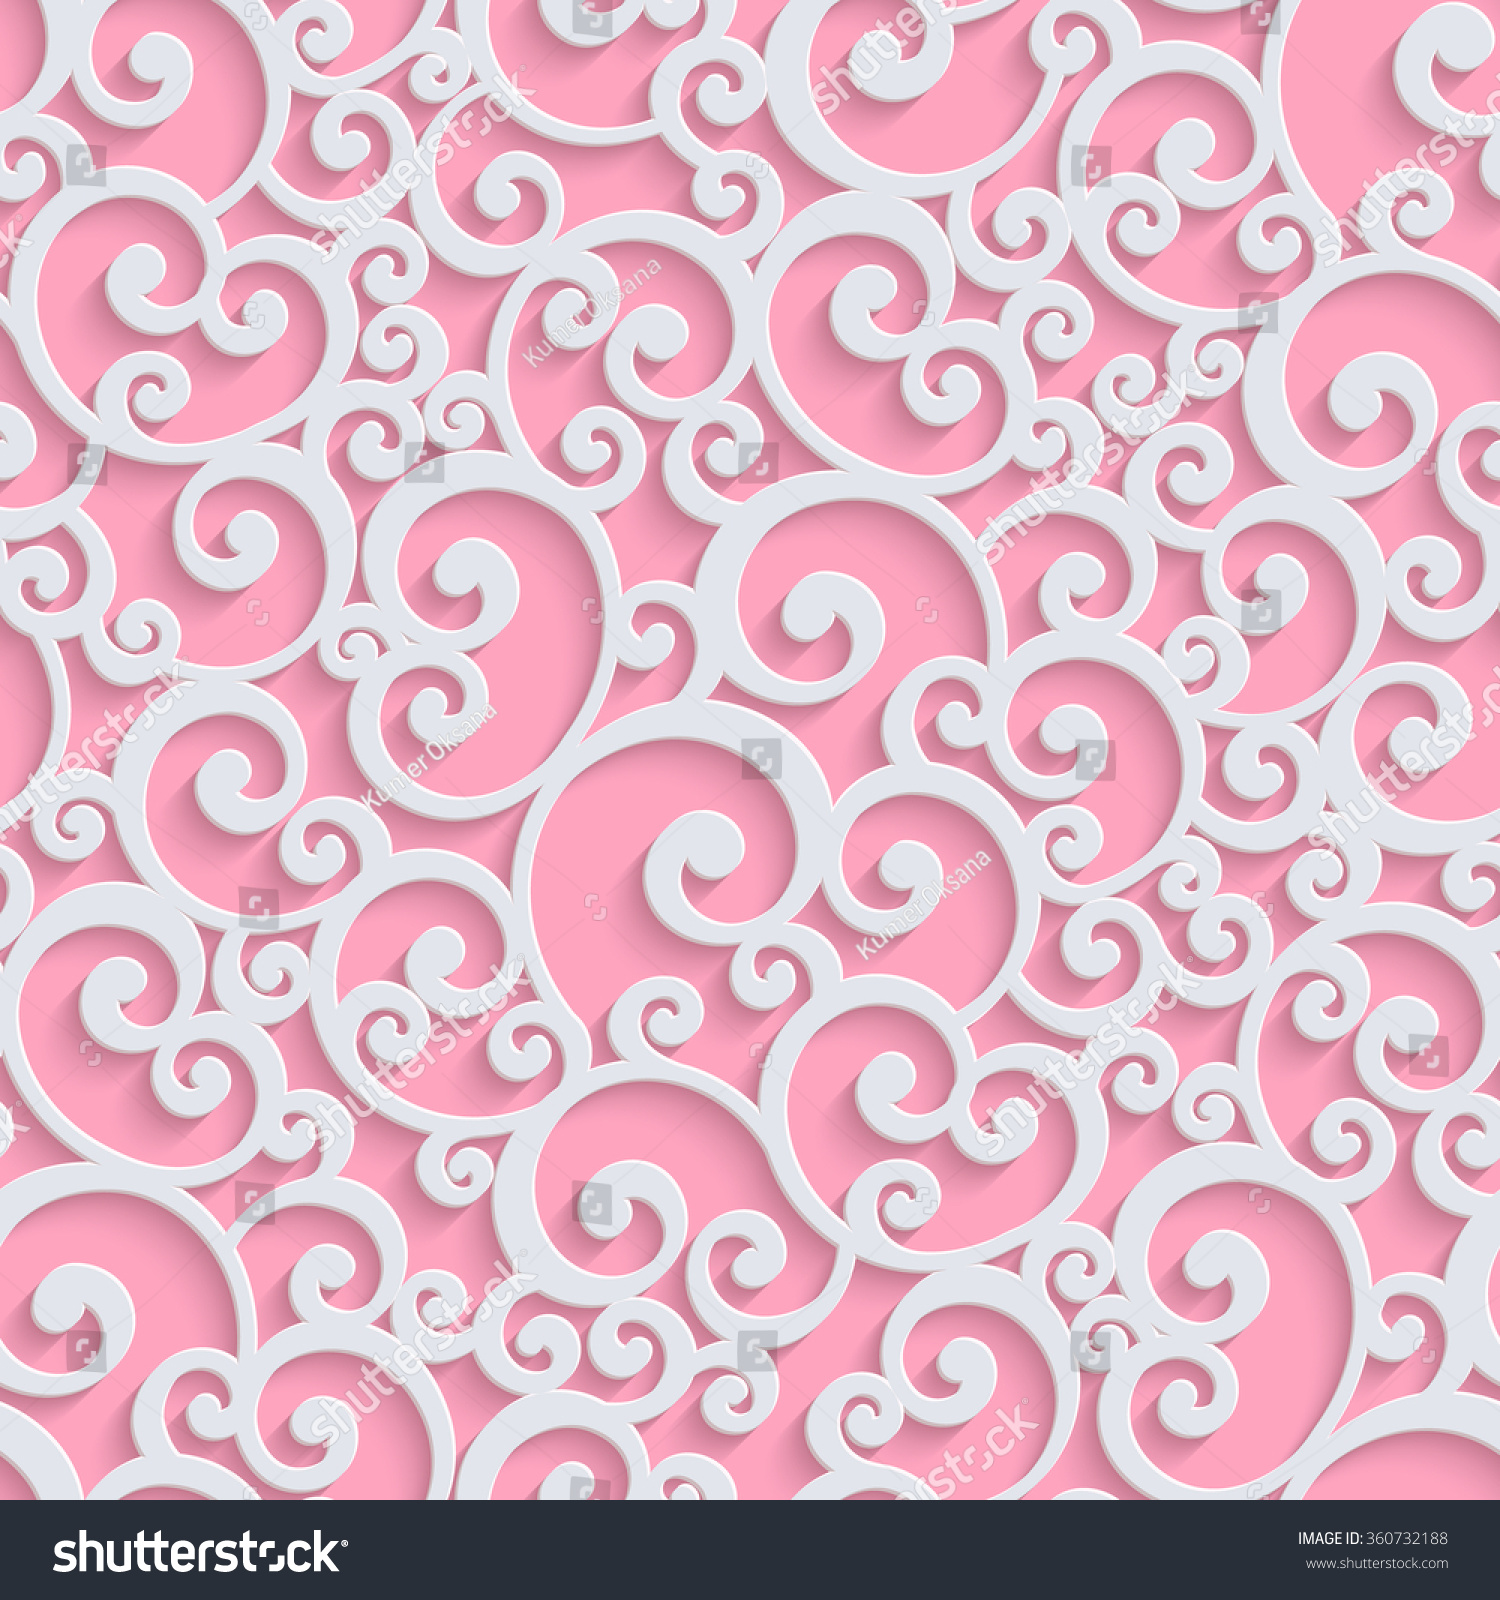 Romantic vector seamless background greeting card wallpaper vector art - Pink Floral 3d Seamless Pattern Background Vector Curl Decoration For Wallpaper Or Romantic Invitation Card